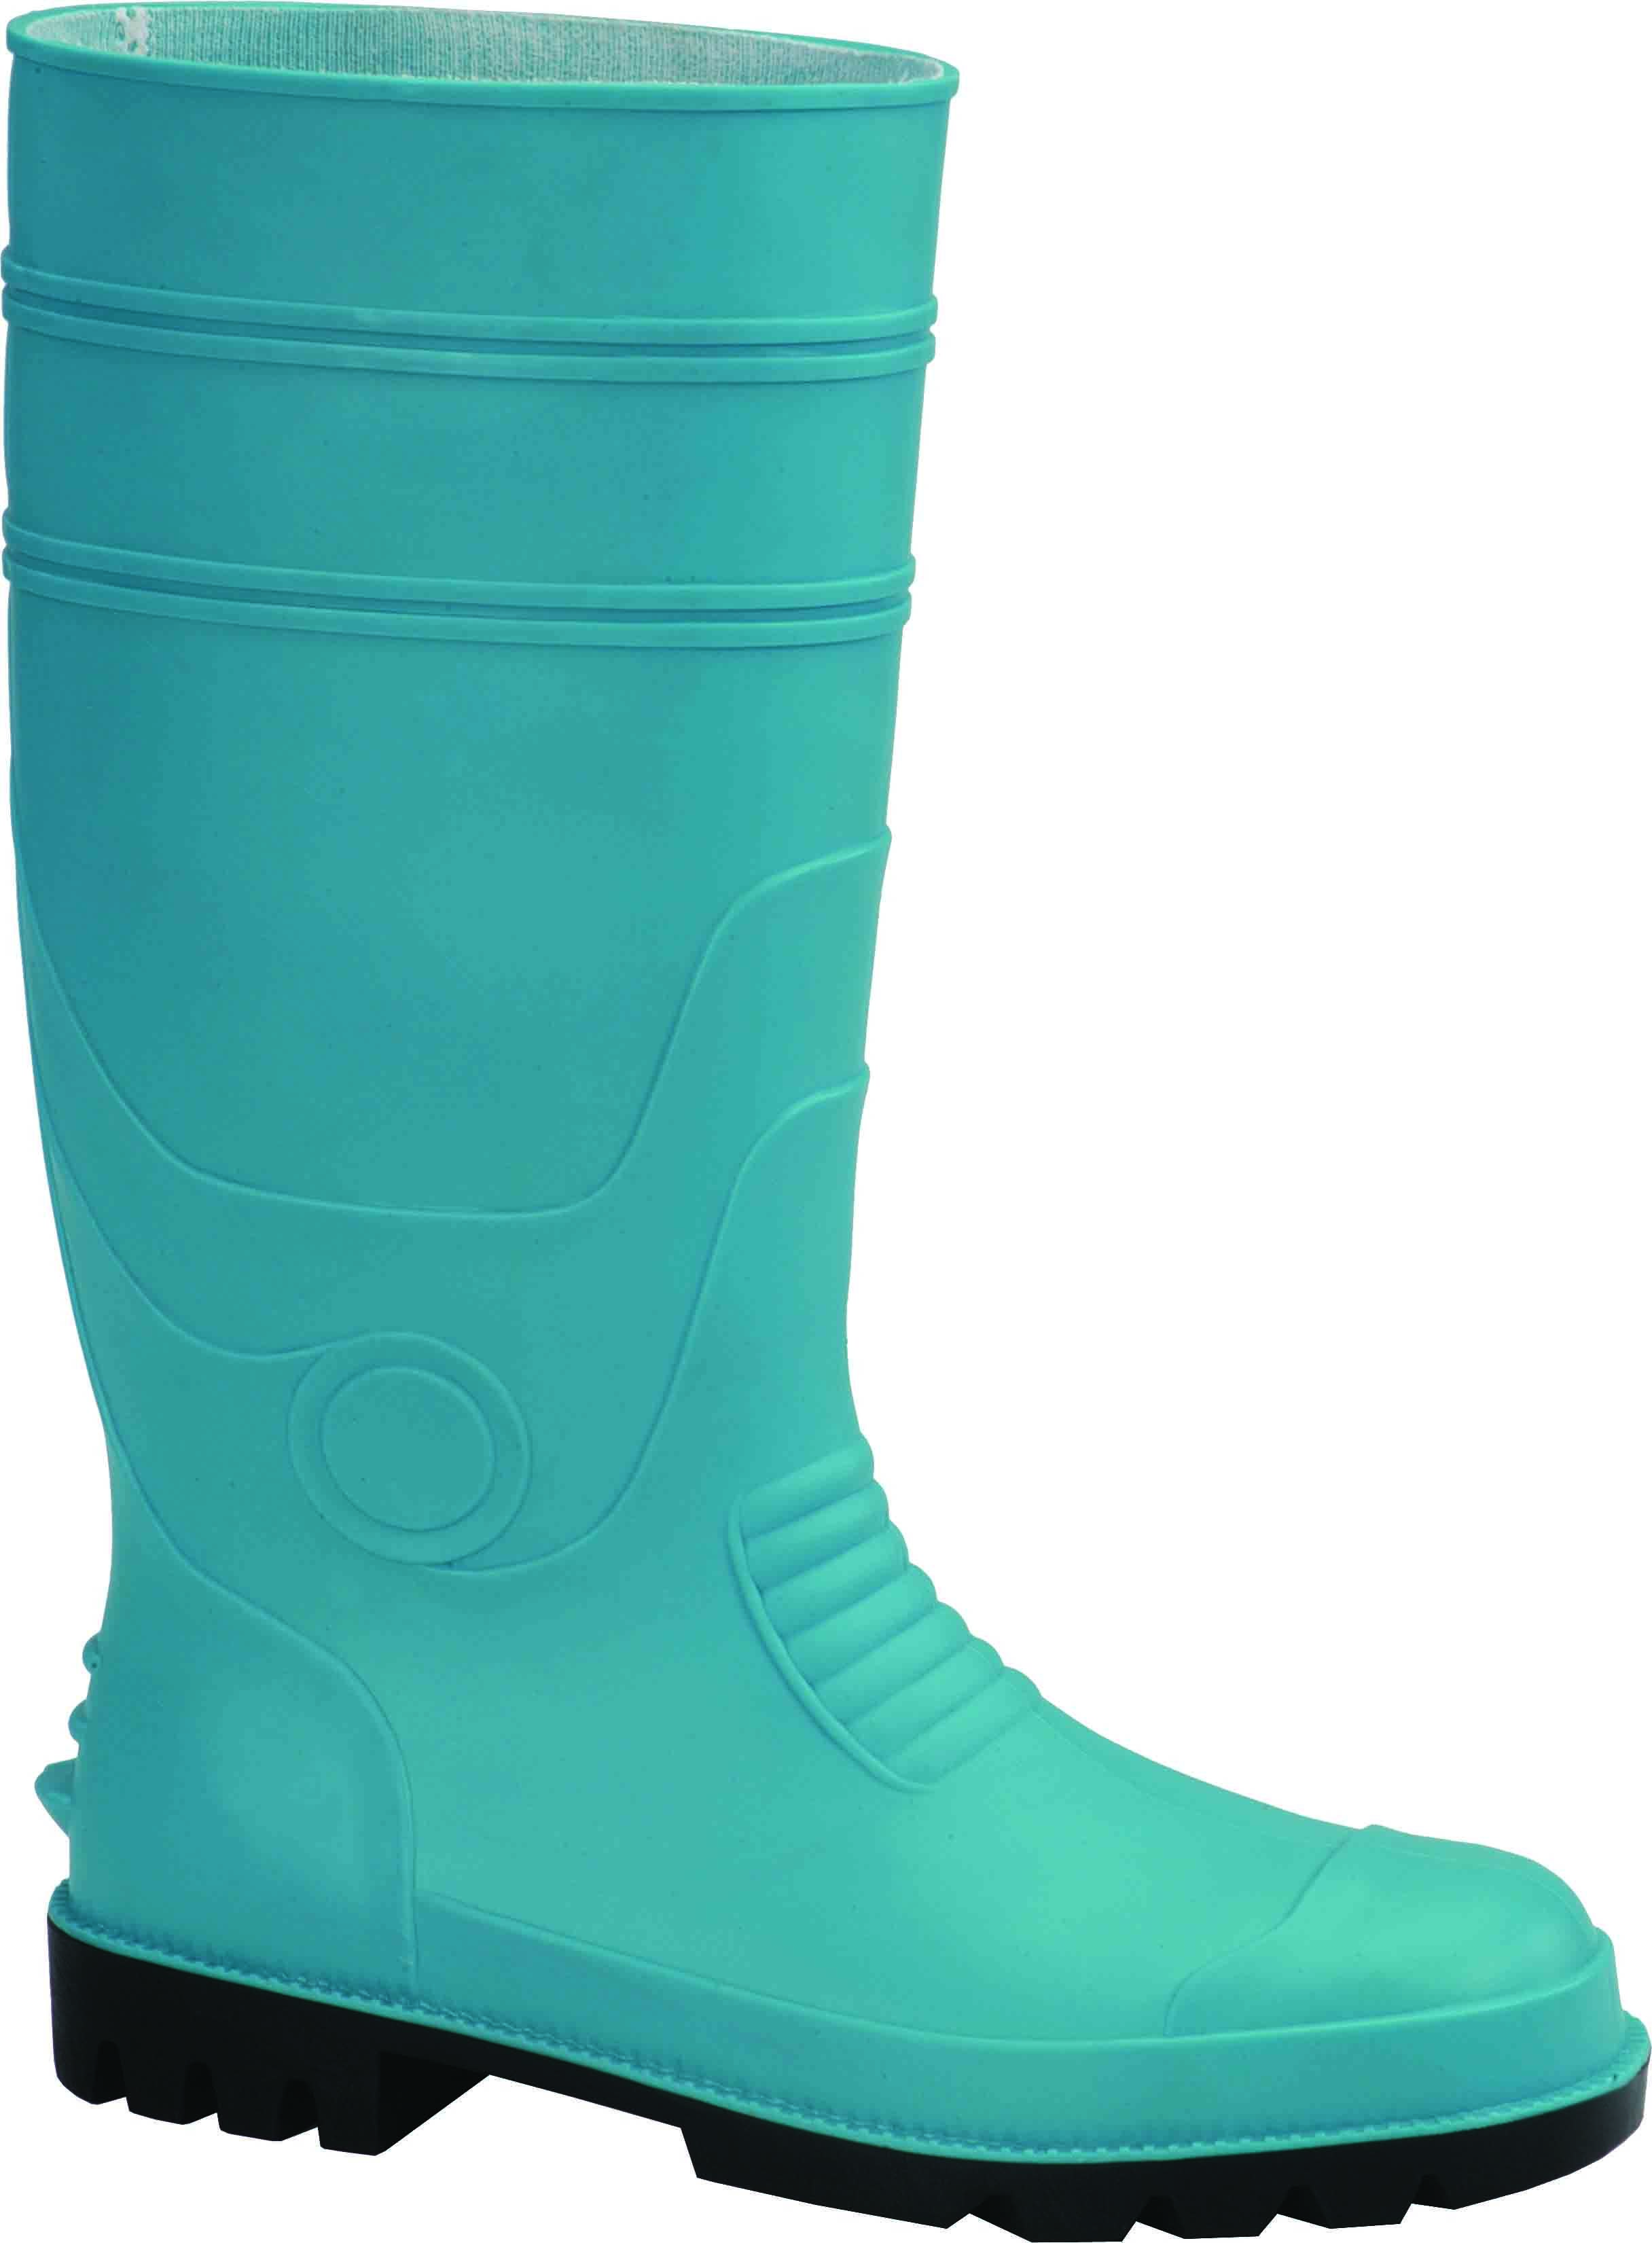 Double Colour Gumboot